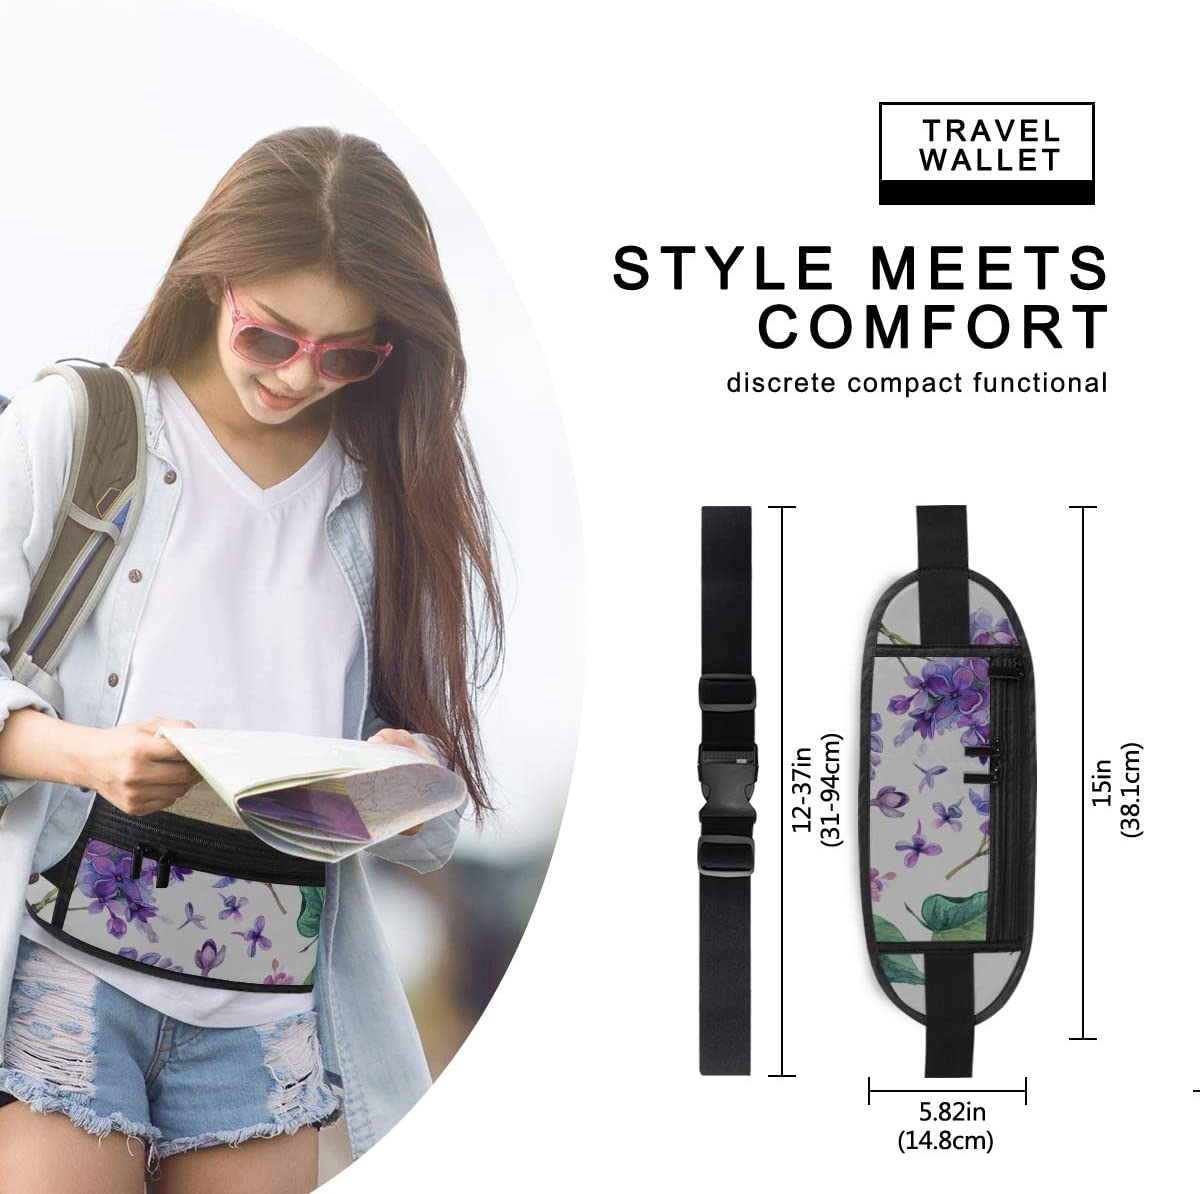 Collection Purple Lilac Flowers Leaves Running Lumbar Pack For Travel Outdoor Sports Walking Travel Waist Pack,travel Pocket With Adjustable Belt